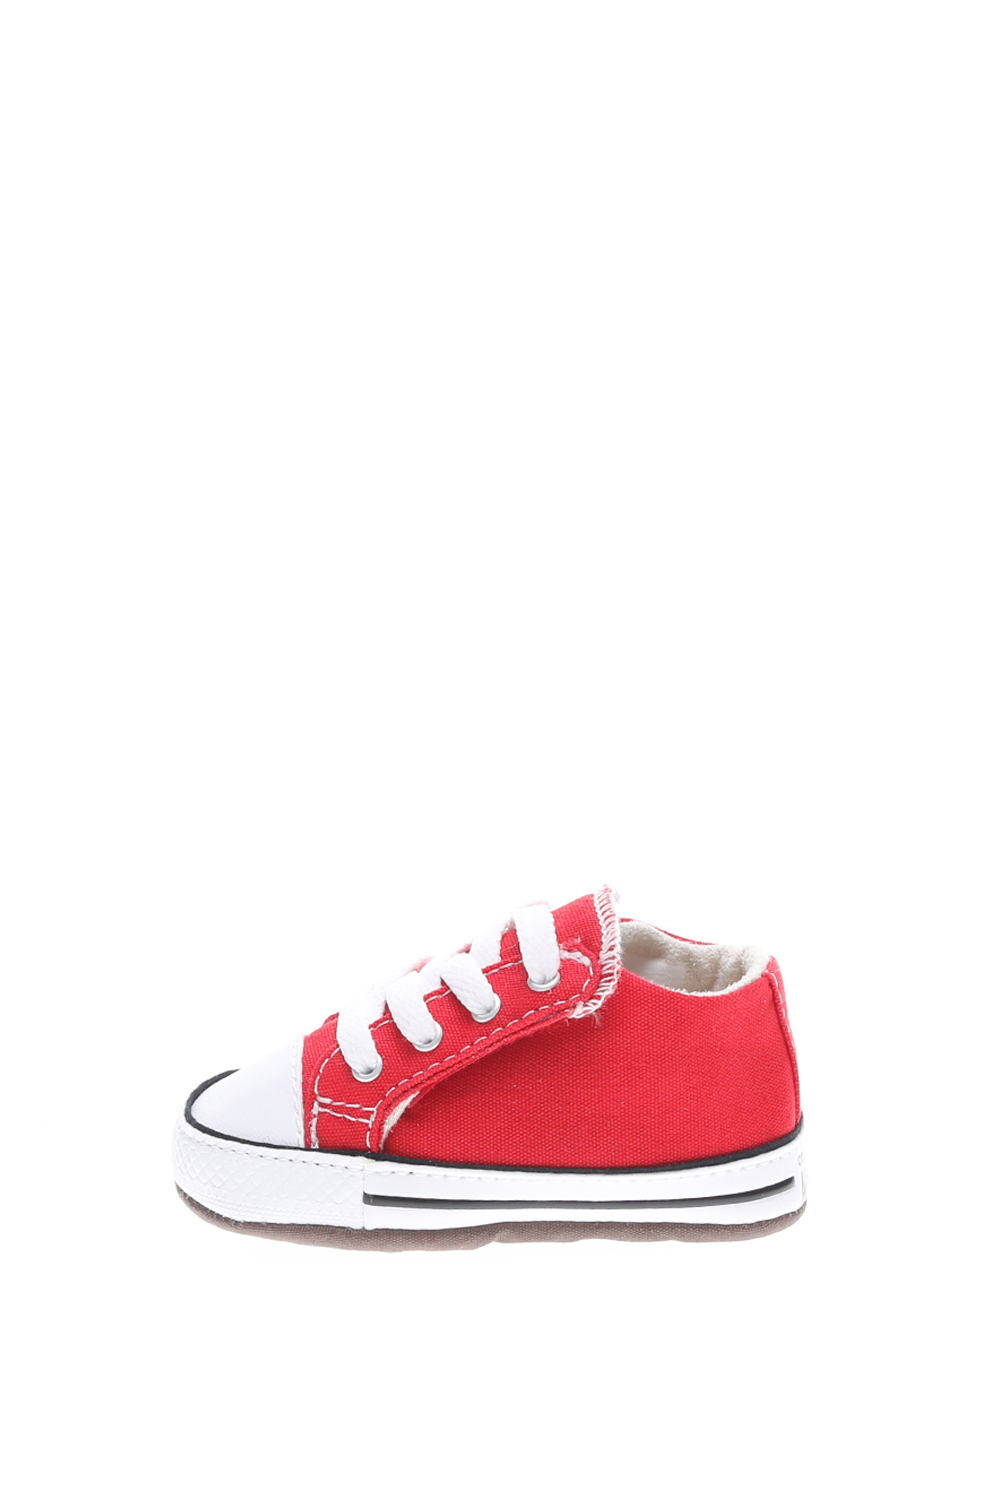 CONVERSE – Βρεφικά sneakers αγκαλιάς CONVERSE CHUCK TAYLOR ALL STAR CRIBSTER κόκκινα